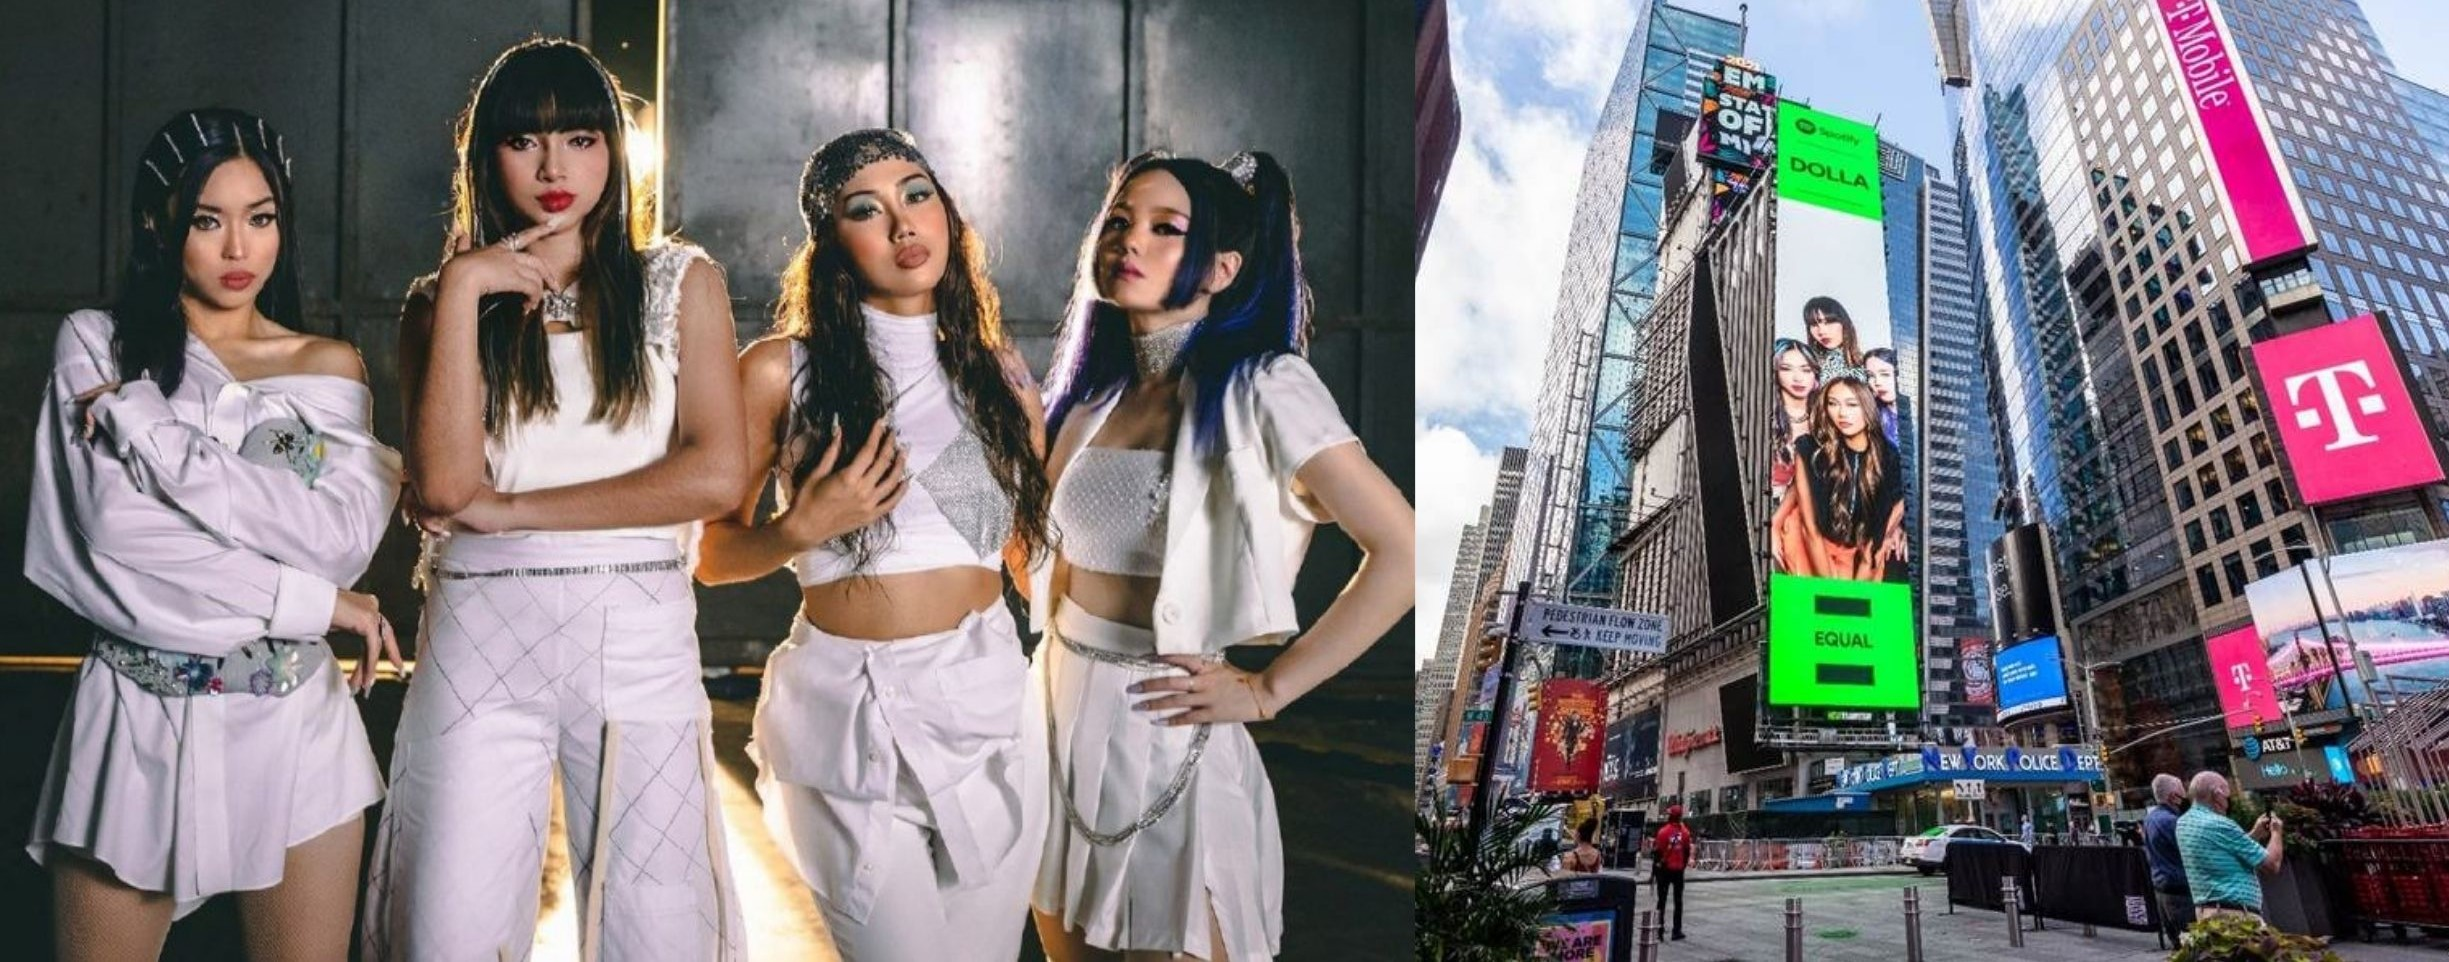 DOLLA Gets Featured On NYC's Time Square Billboard!